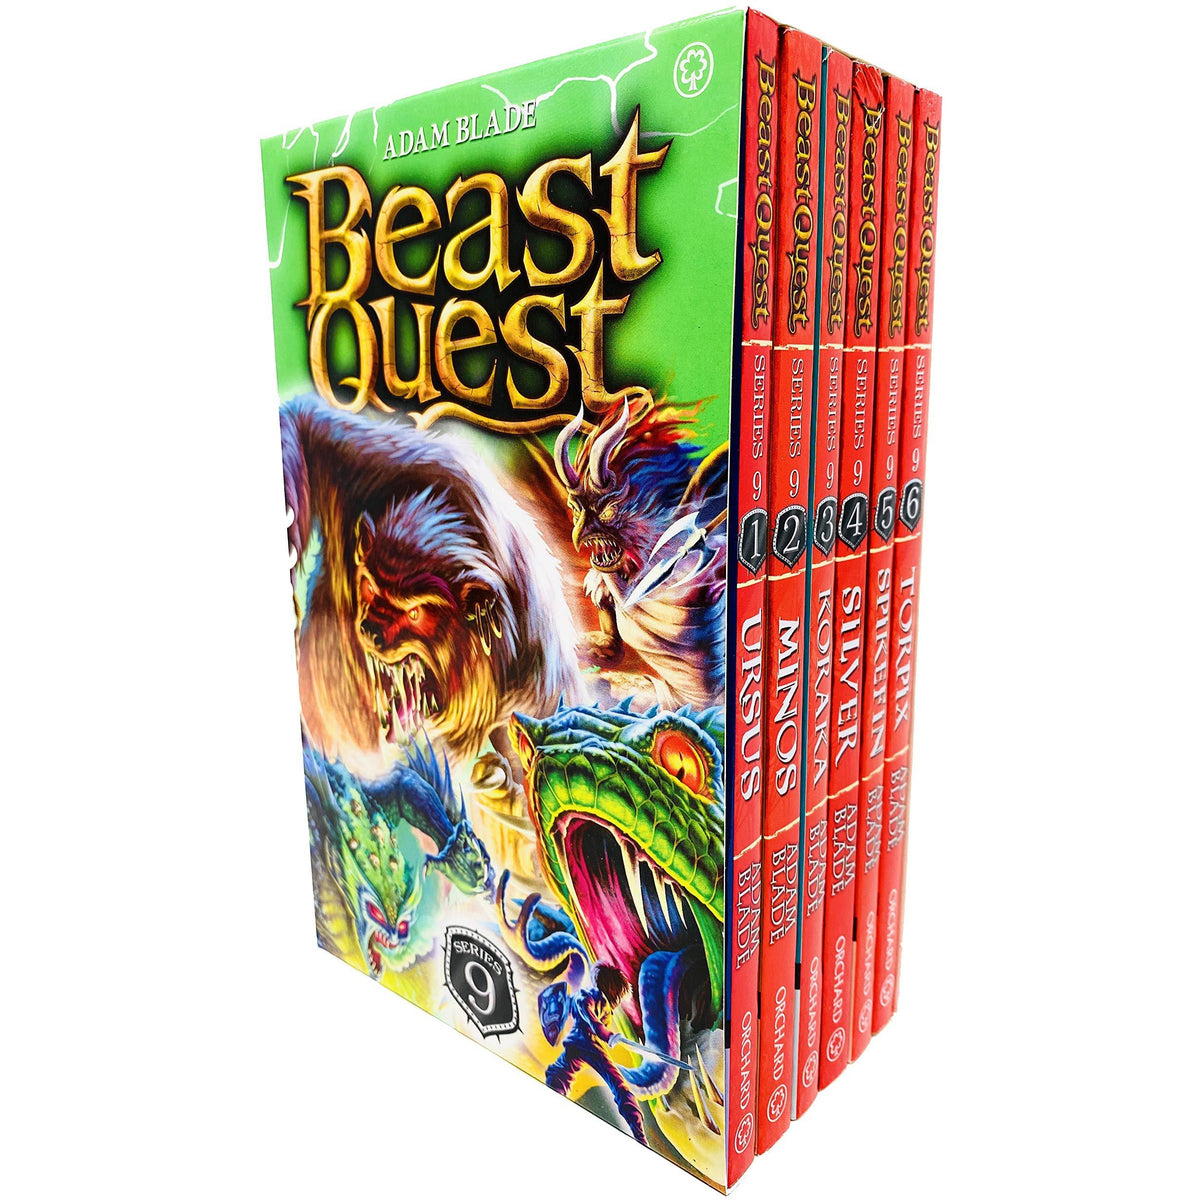 beast quest pack series 9 6 books  the book bundle